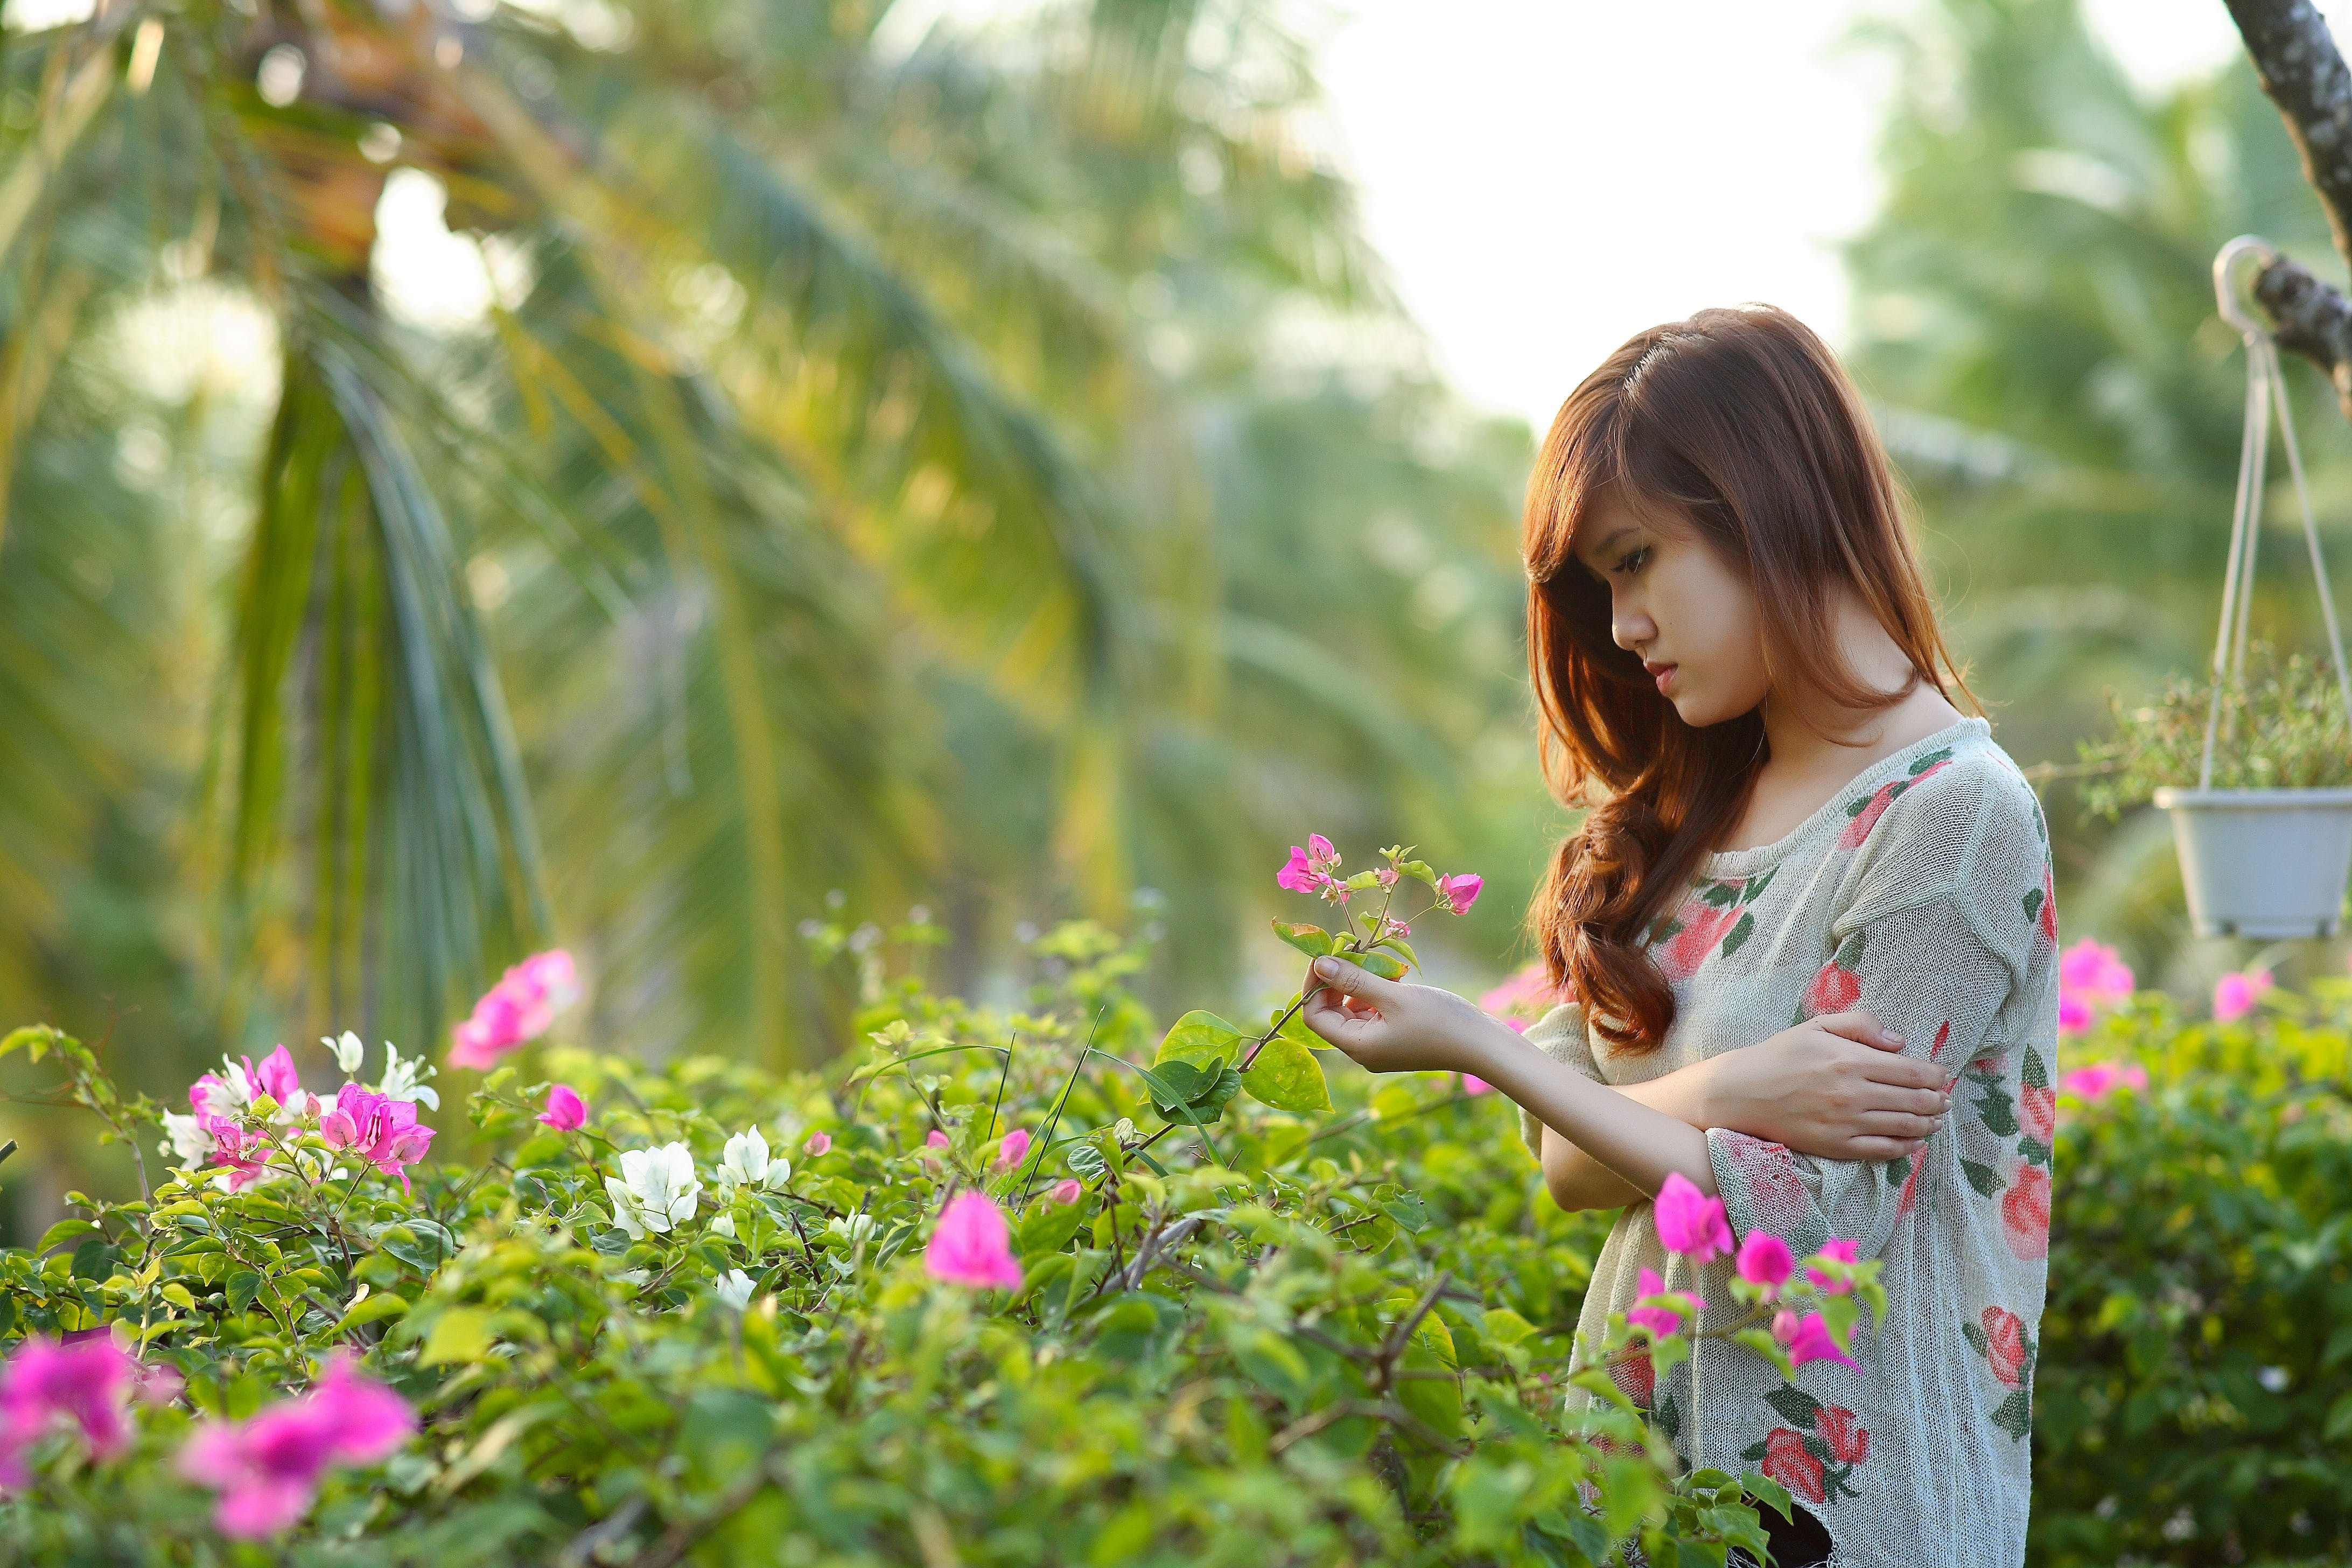 Woman Wearing White, Pink, and Green Floral Dress Holding Pink Bougainvillea Flowers